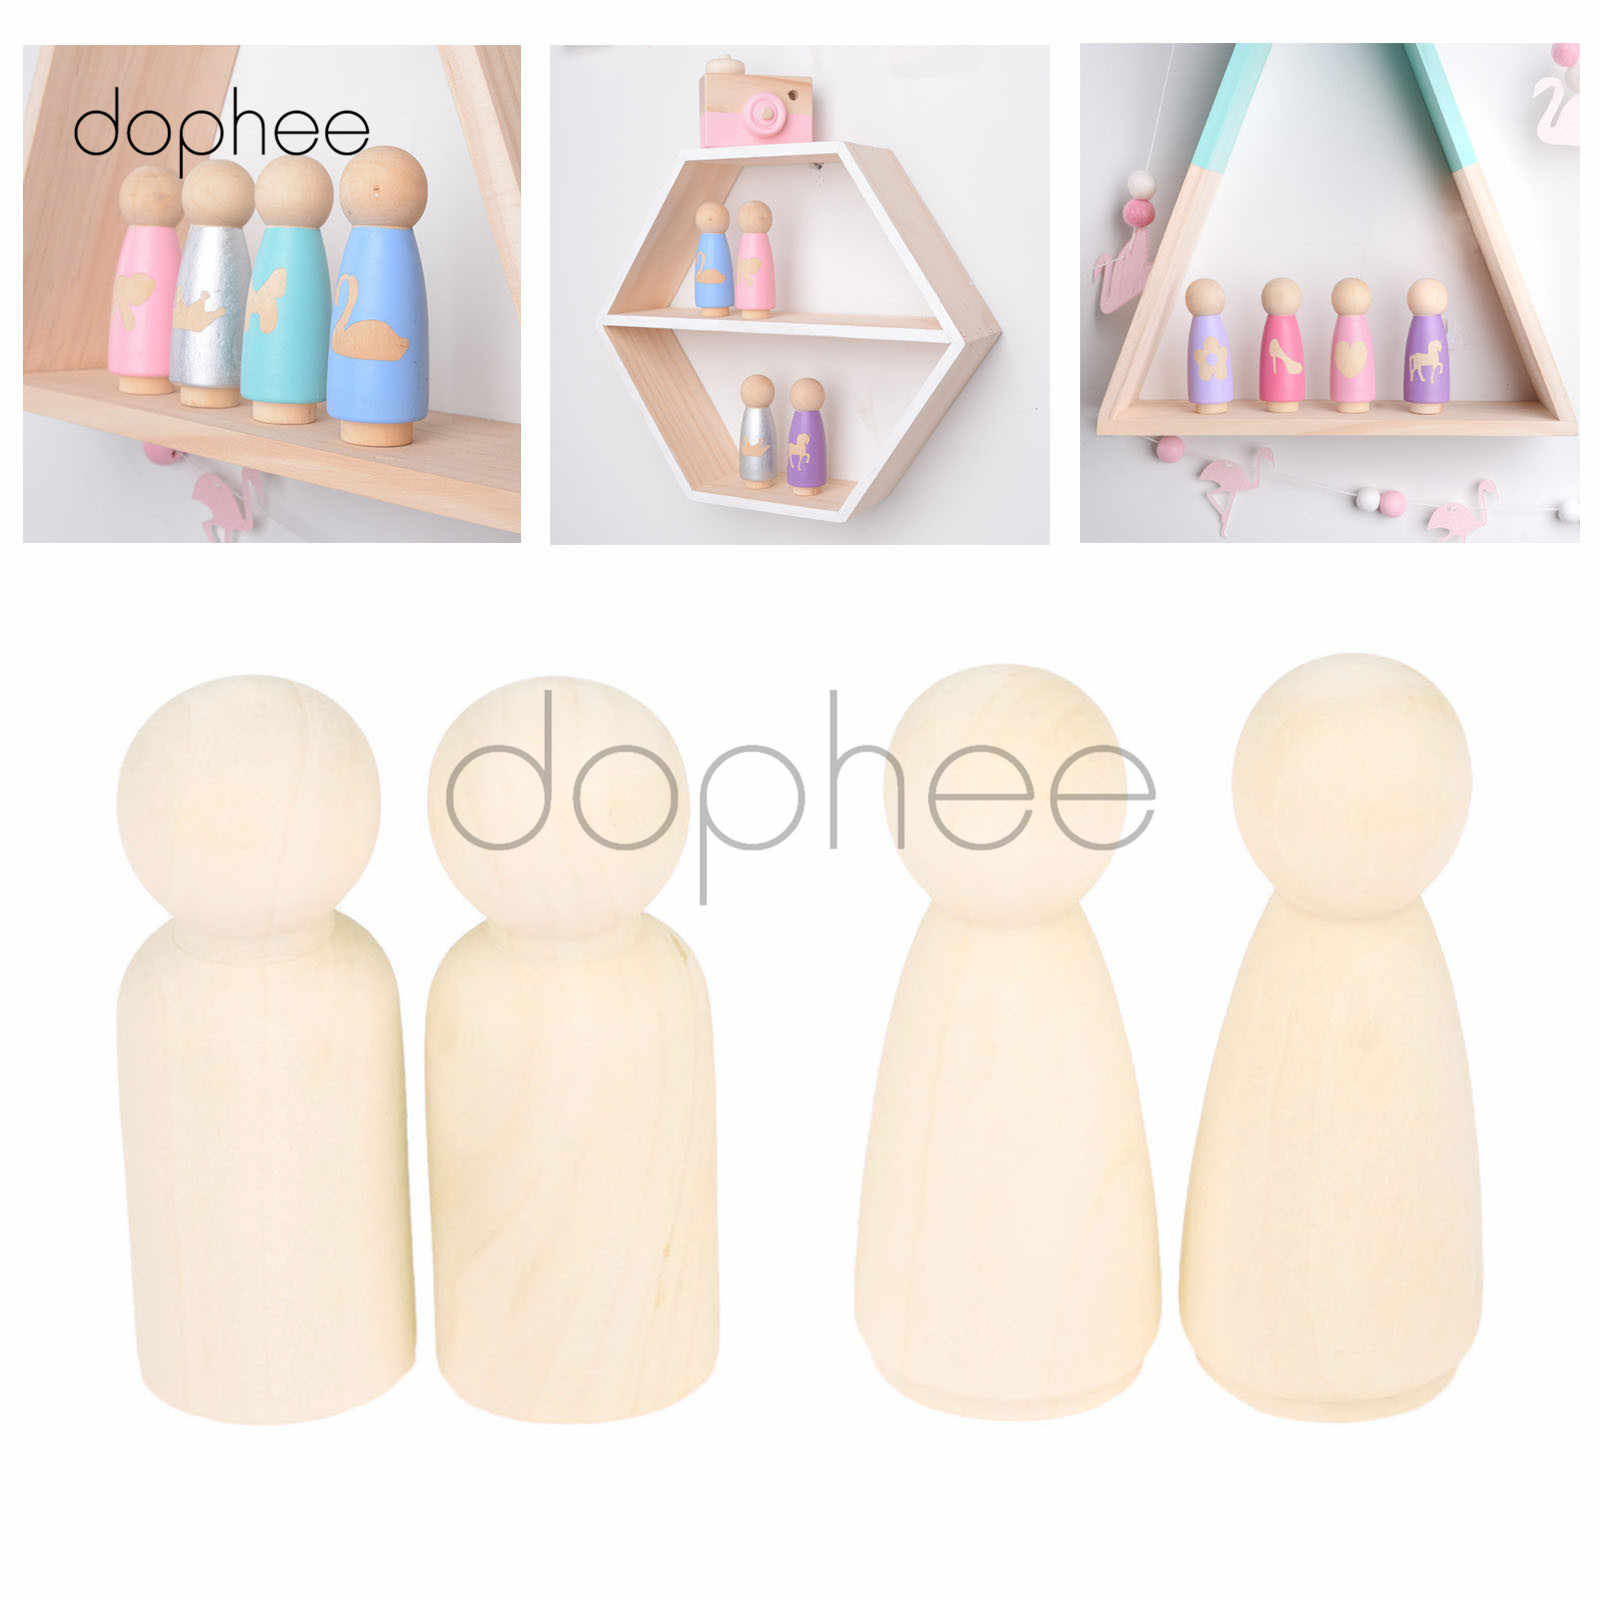 dophee 10pcs 55mm Men or Women Wooden Peg Dolls Unpainted Figures Wedding Cake Family Hard Wood Dolls Kid's Printed DIY Toys